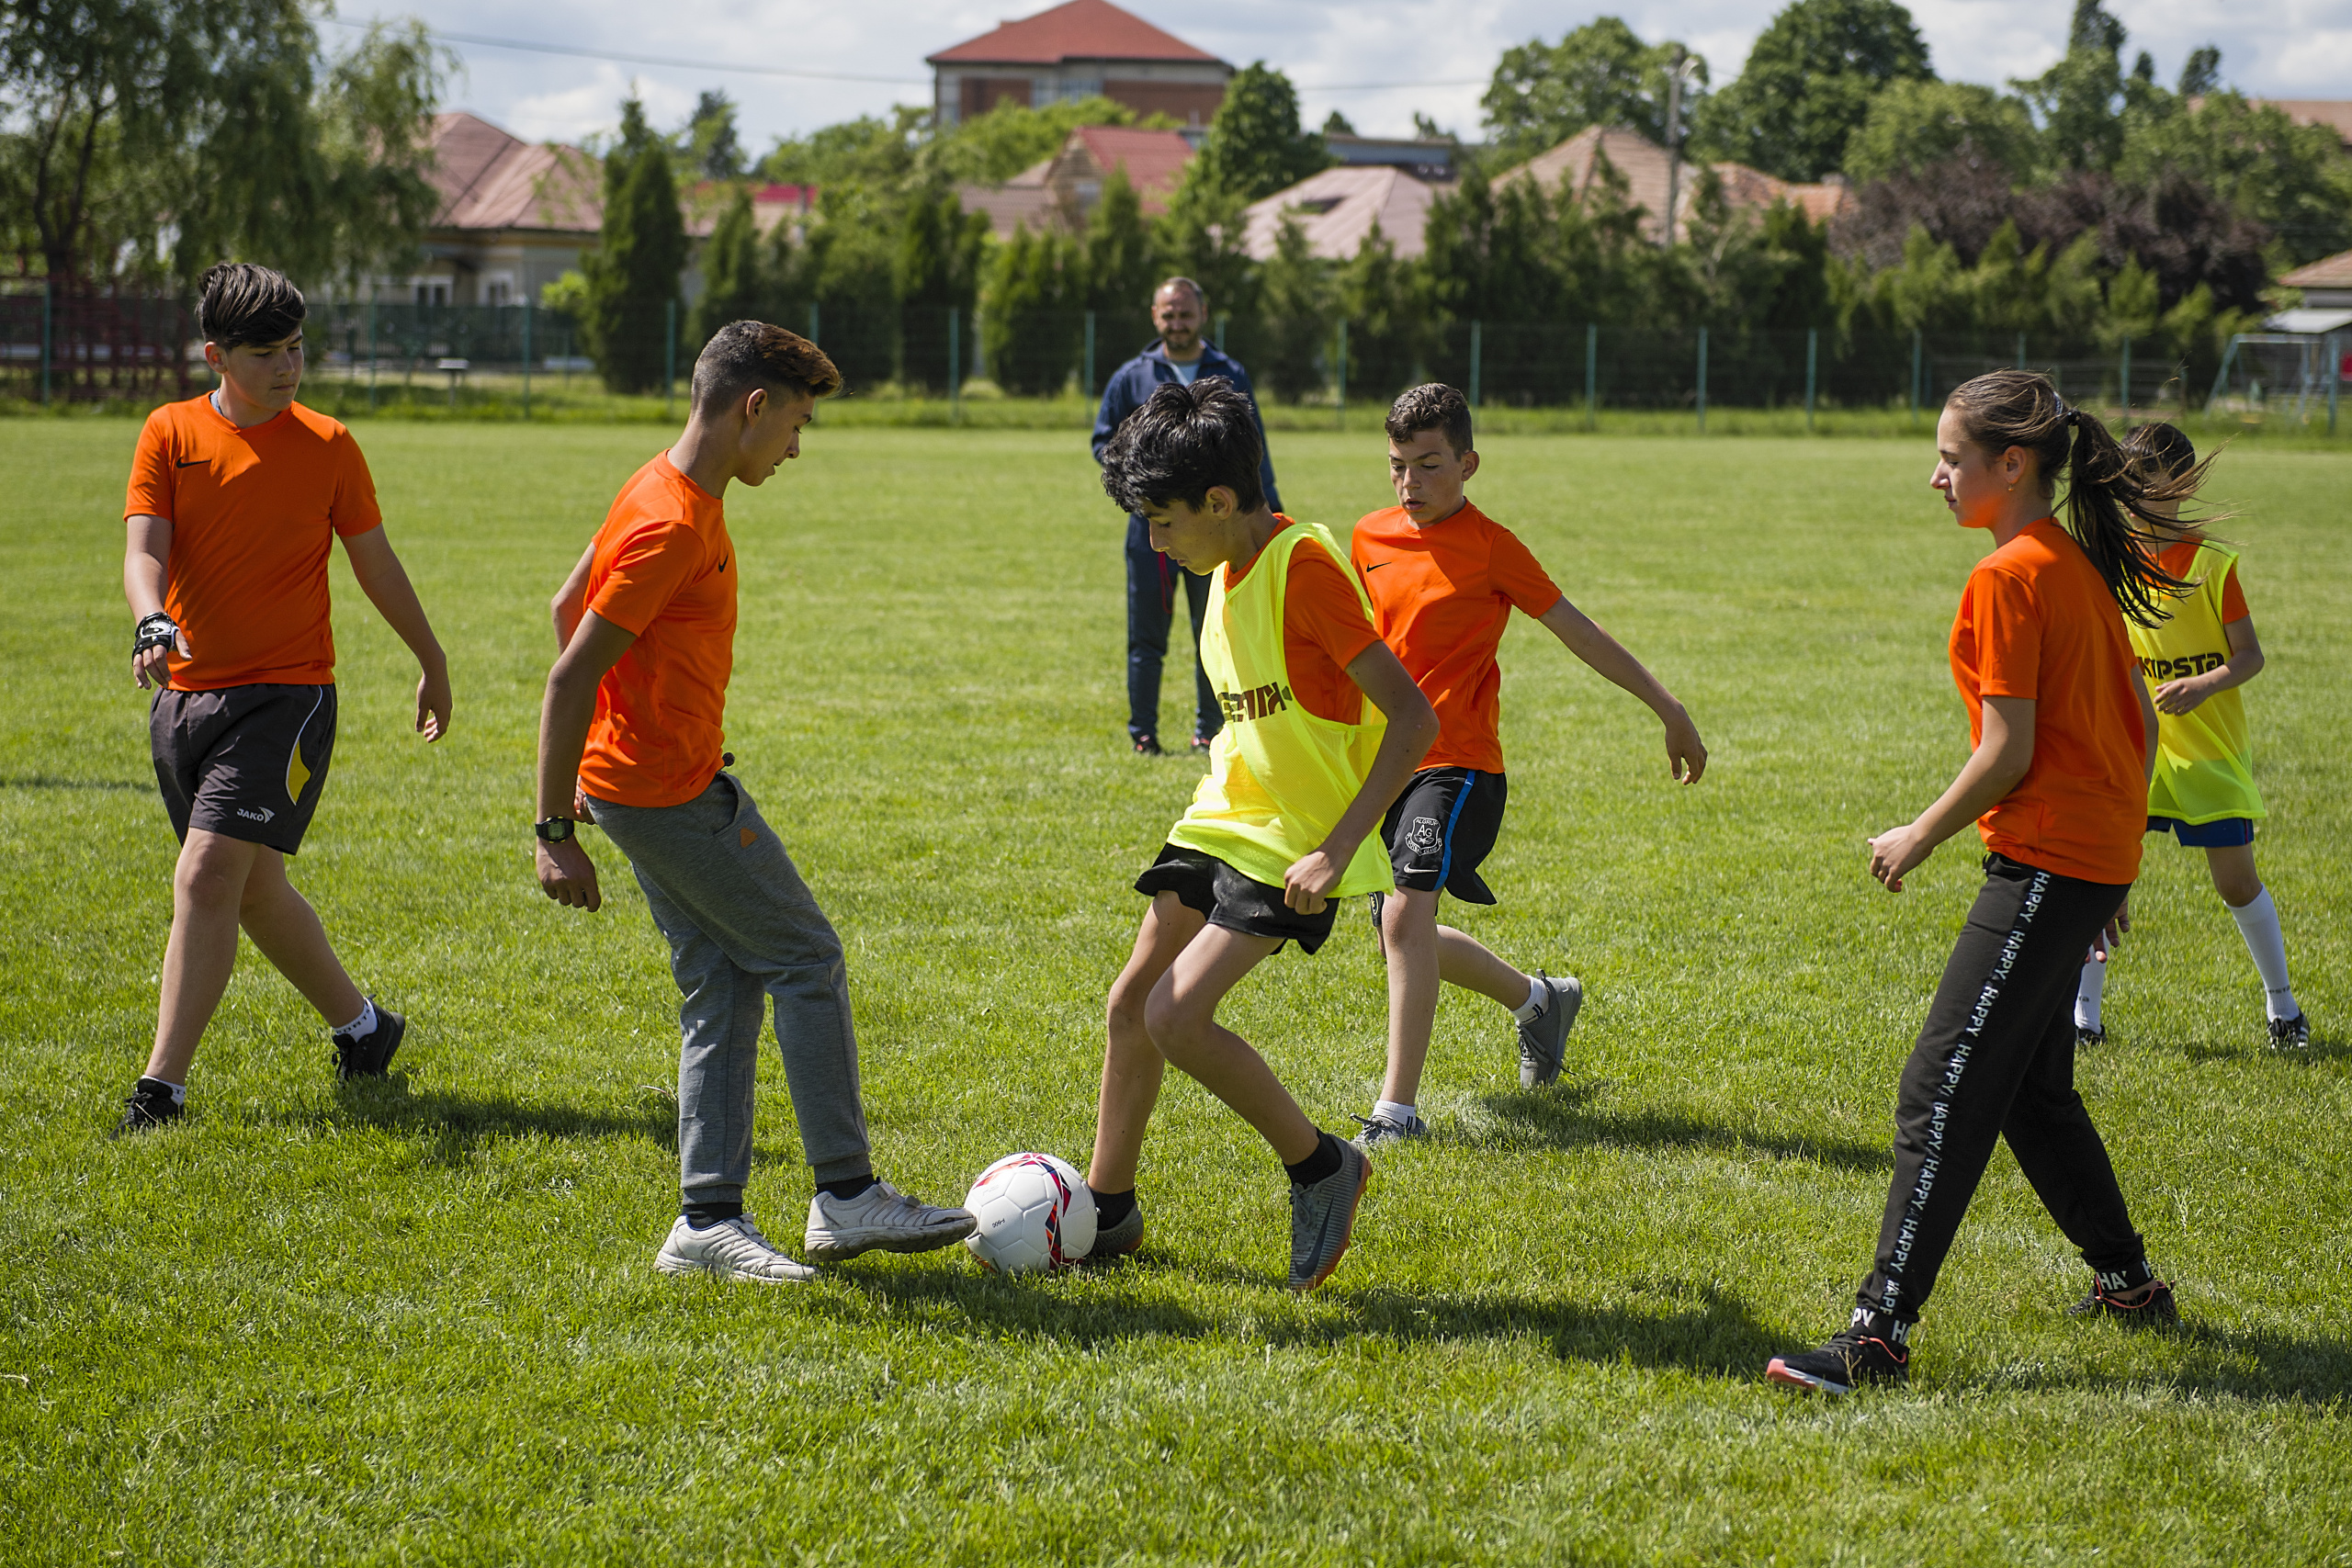 Children playing football in Romania ©Tdh/Petrut Calinescu